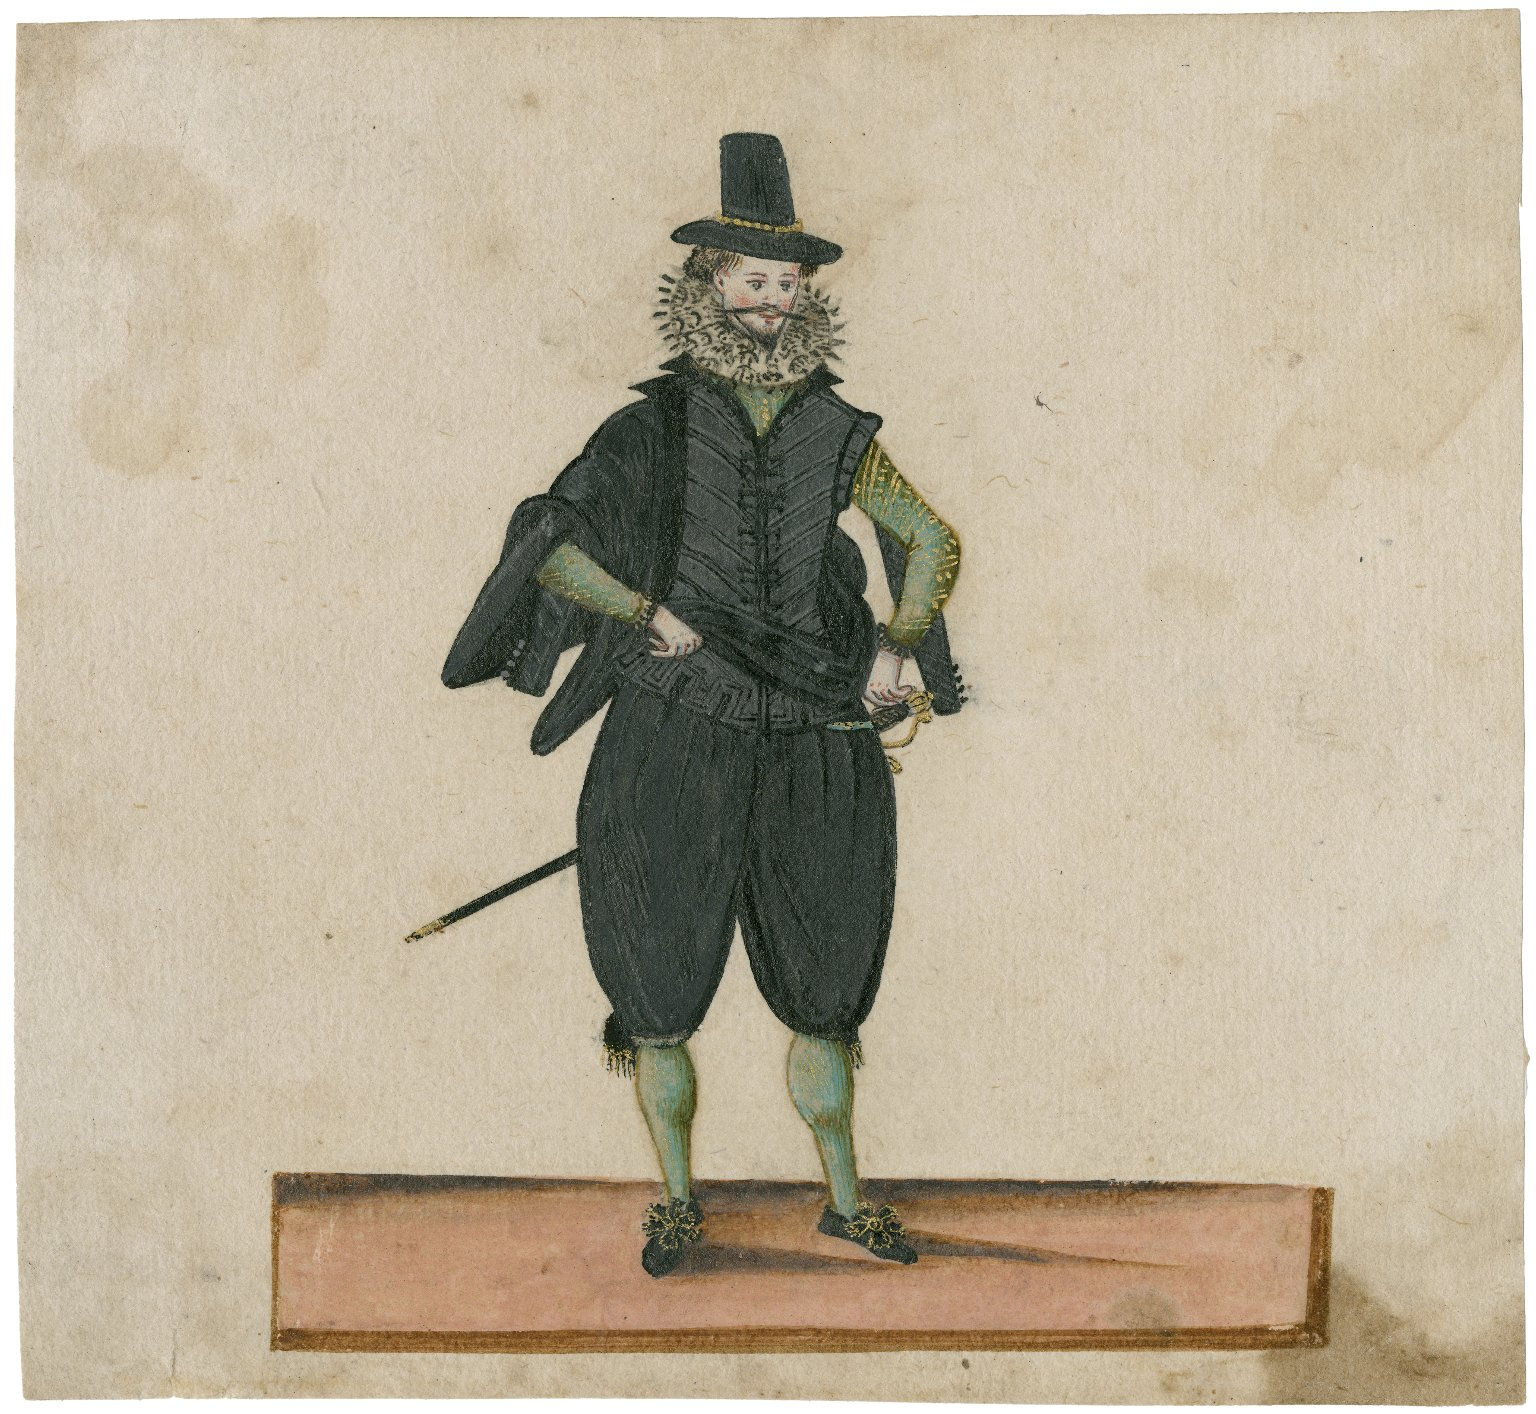 [Royal, military and court costumes of the time of James I] [graphic] / [probably by an Italian artist].